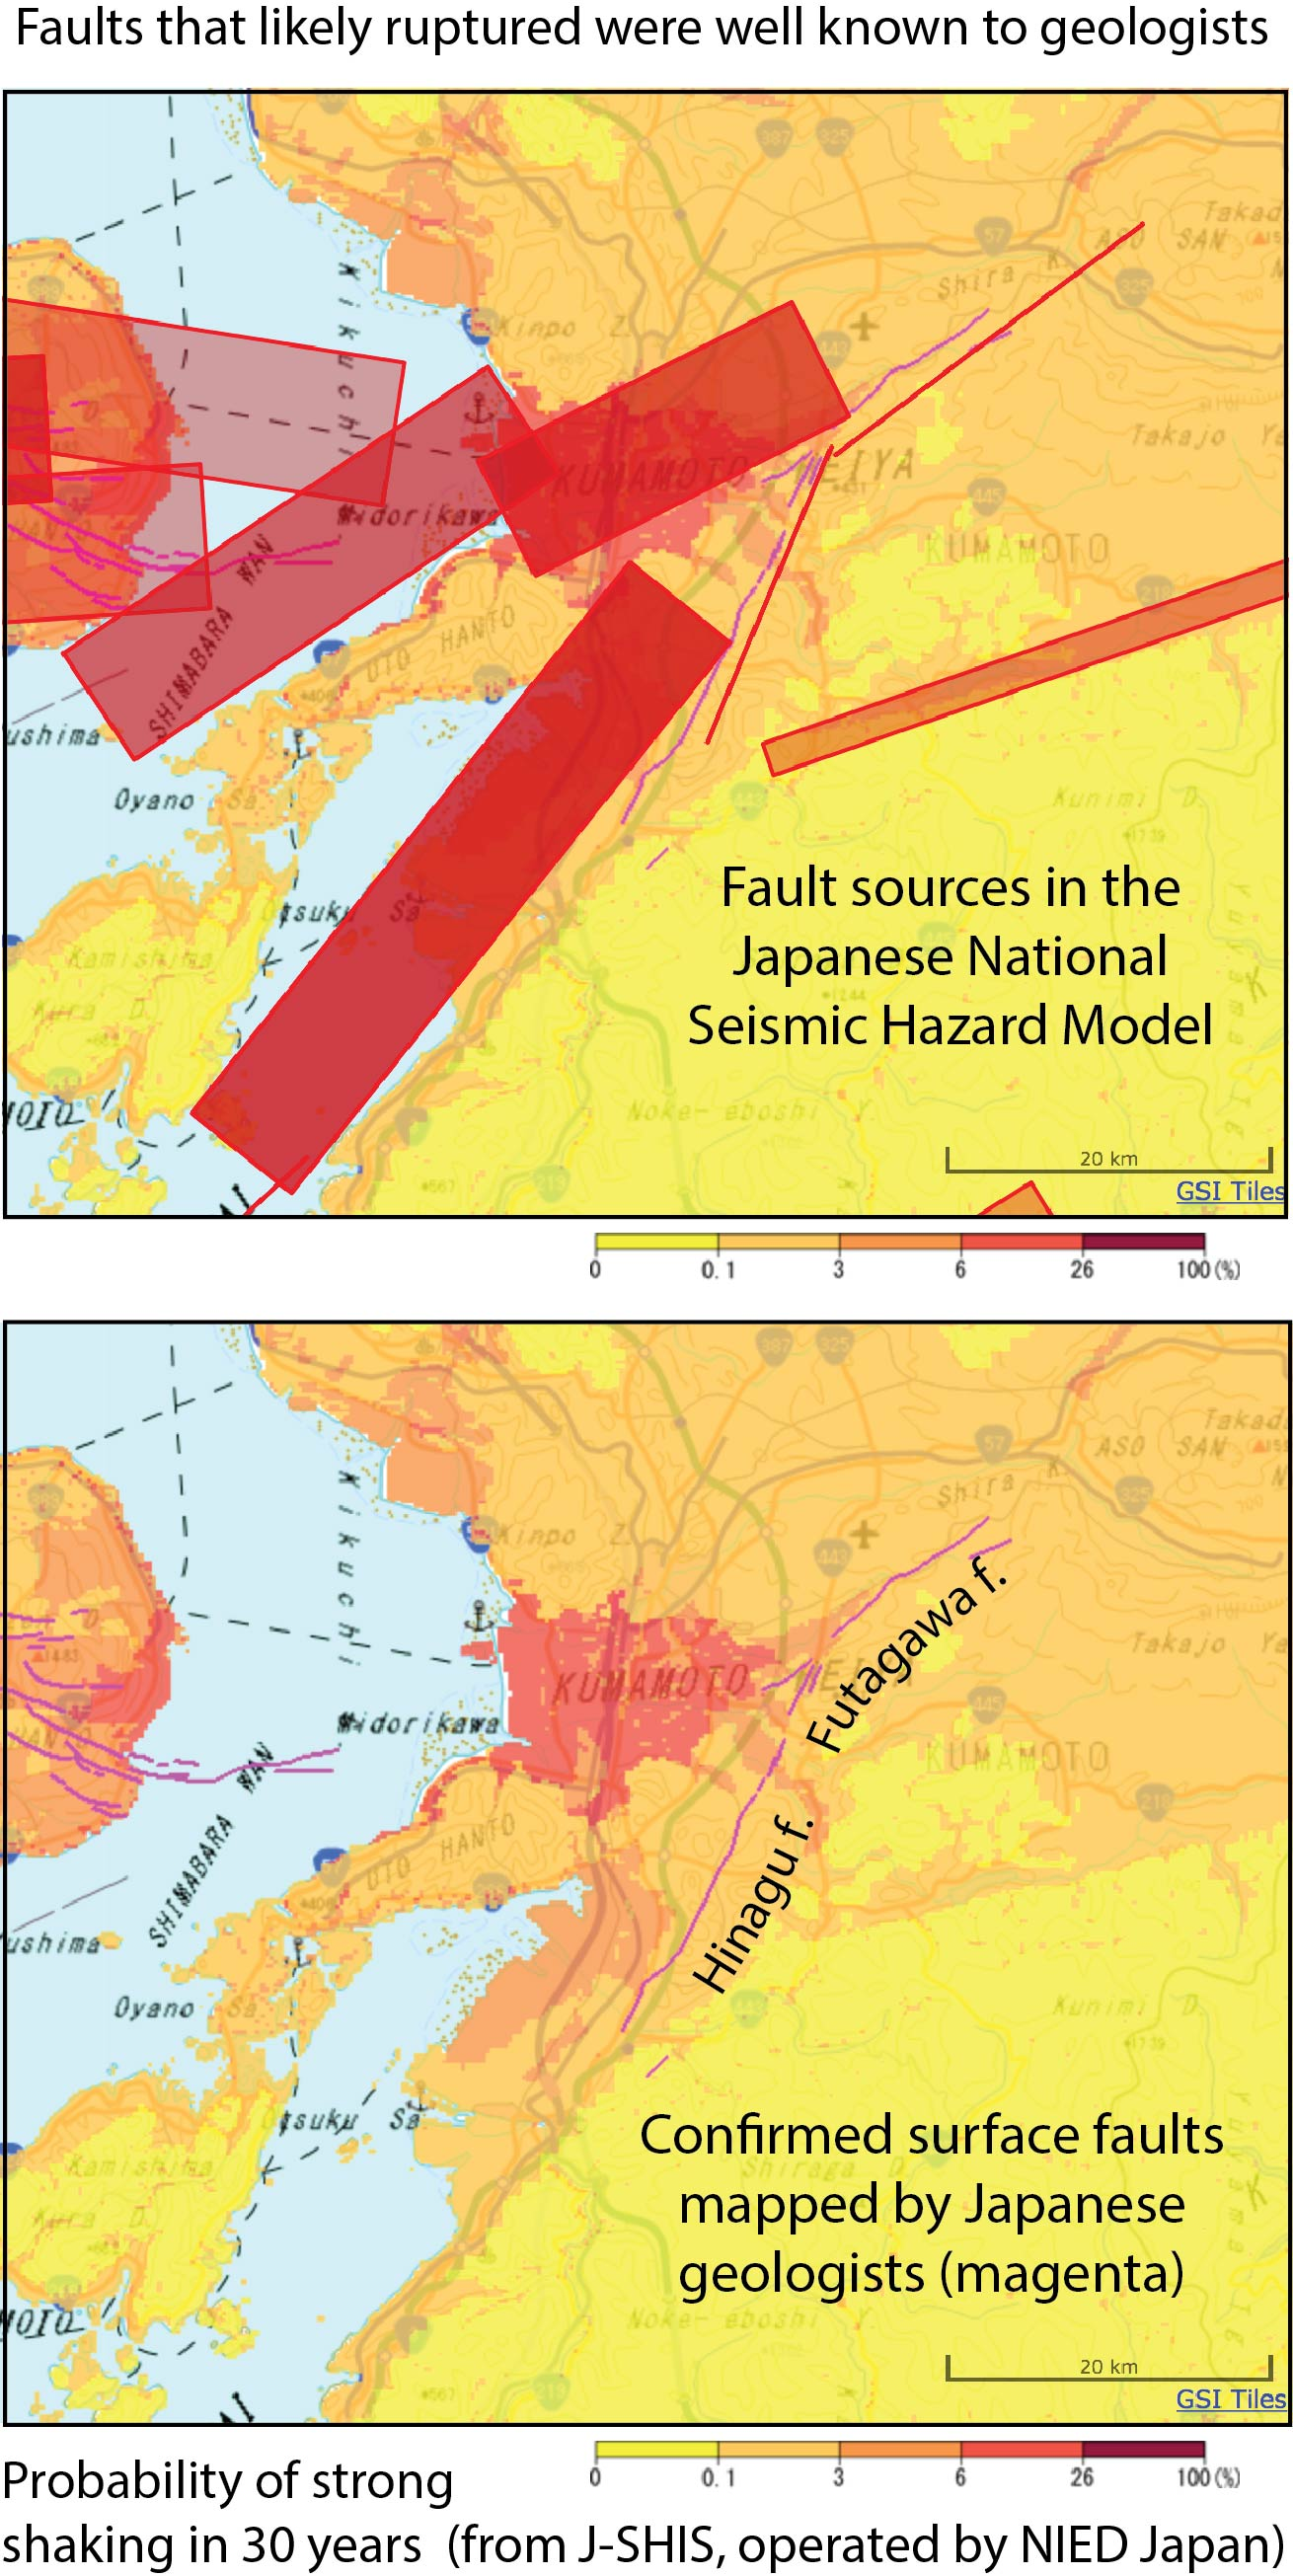 The excellent J-SHIS Japanese seismic hazard app is available in the App Store